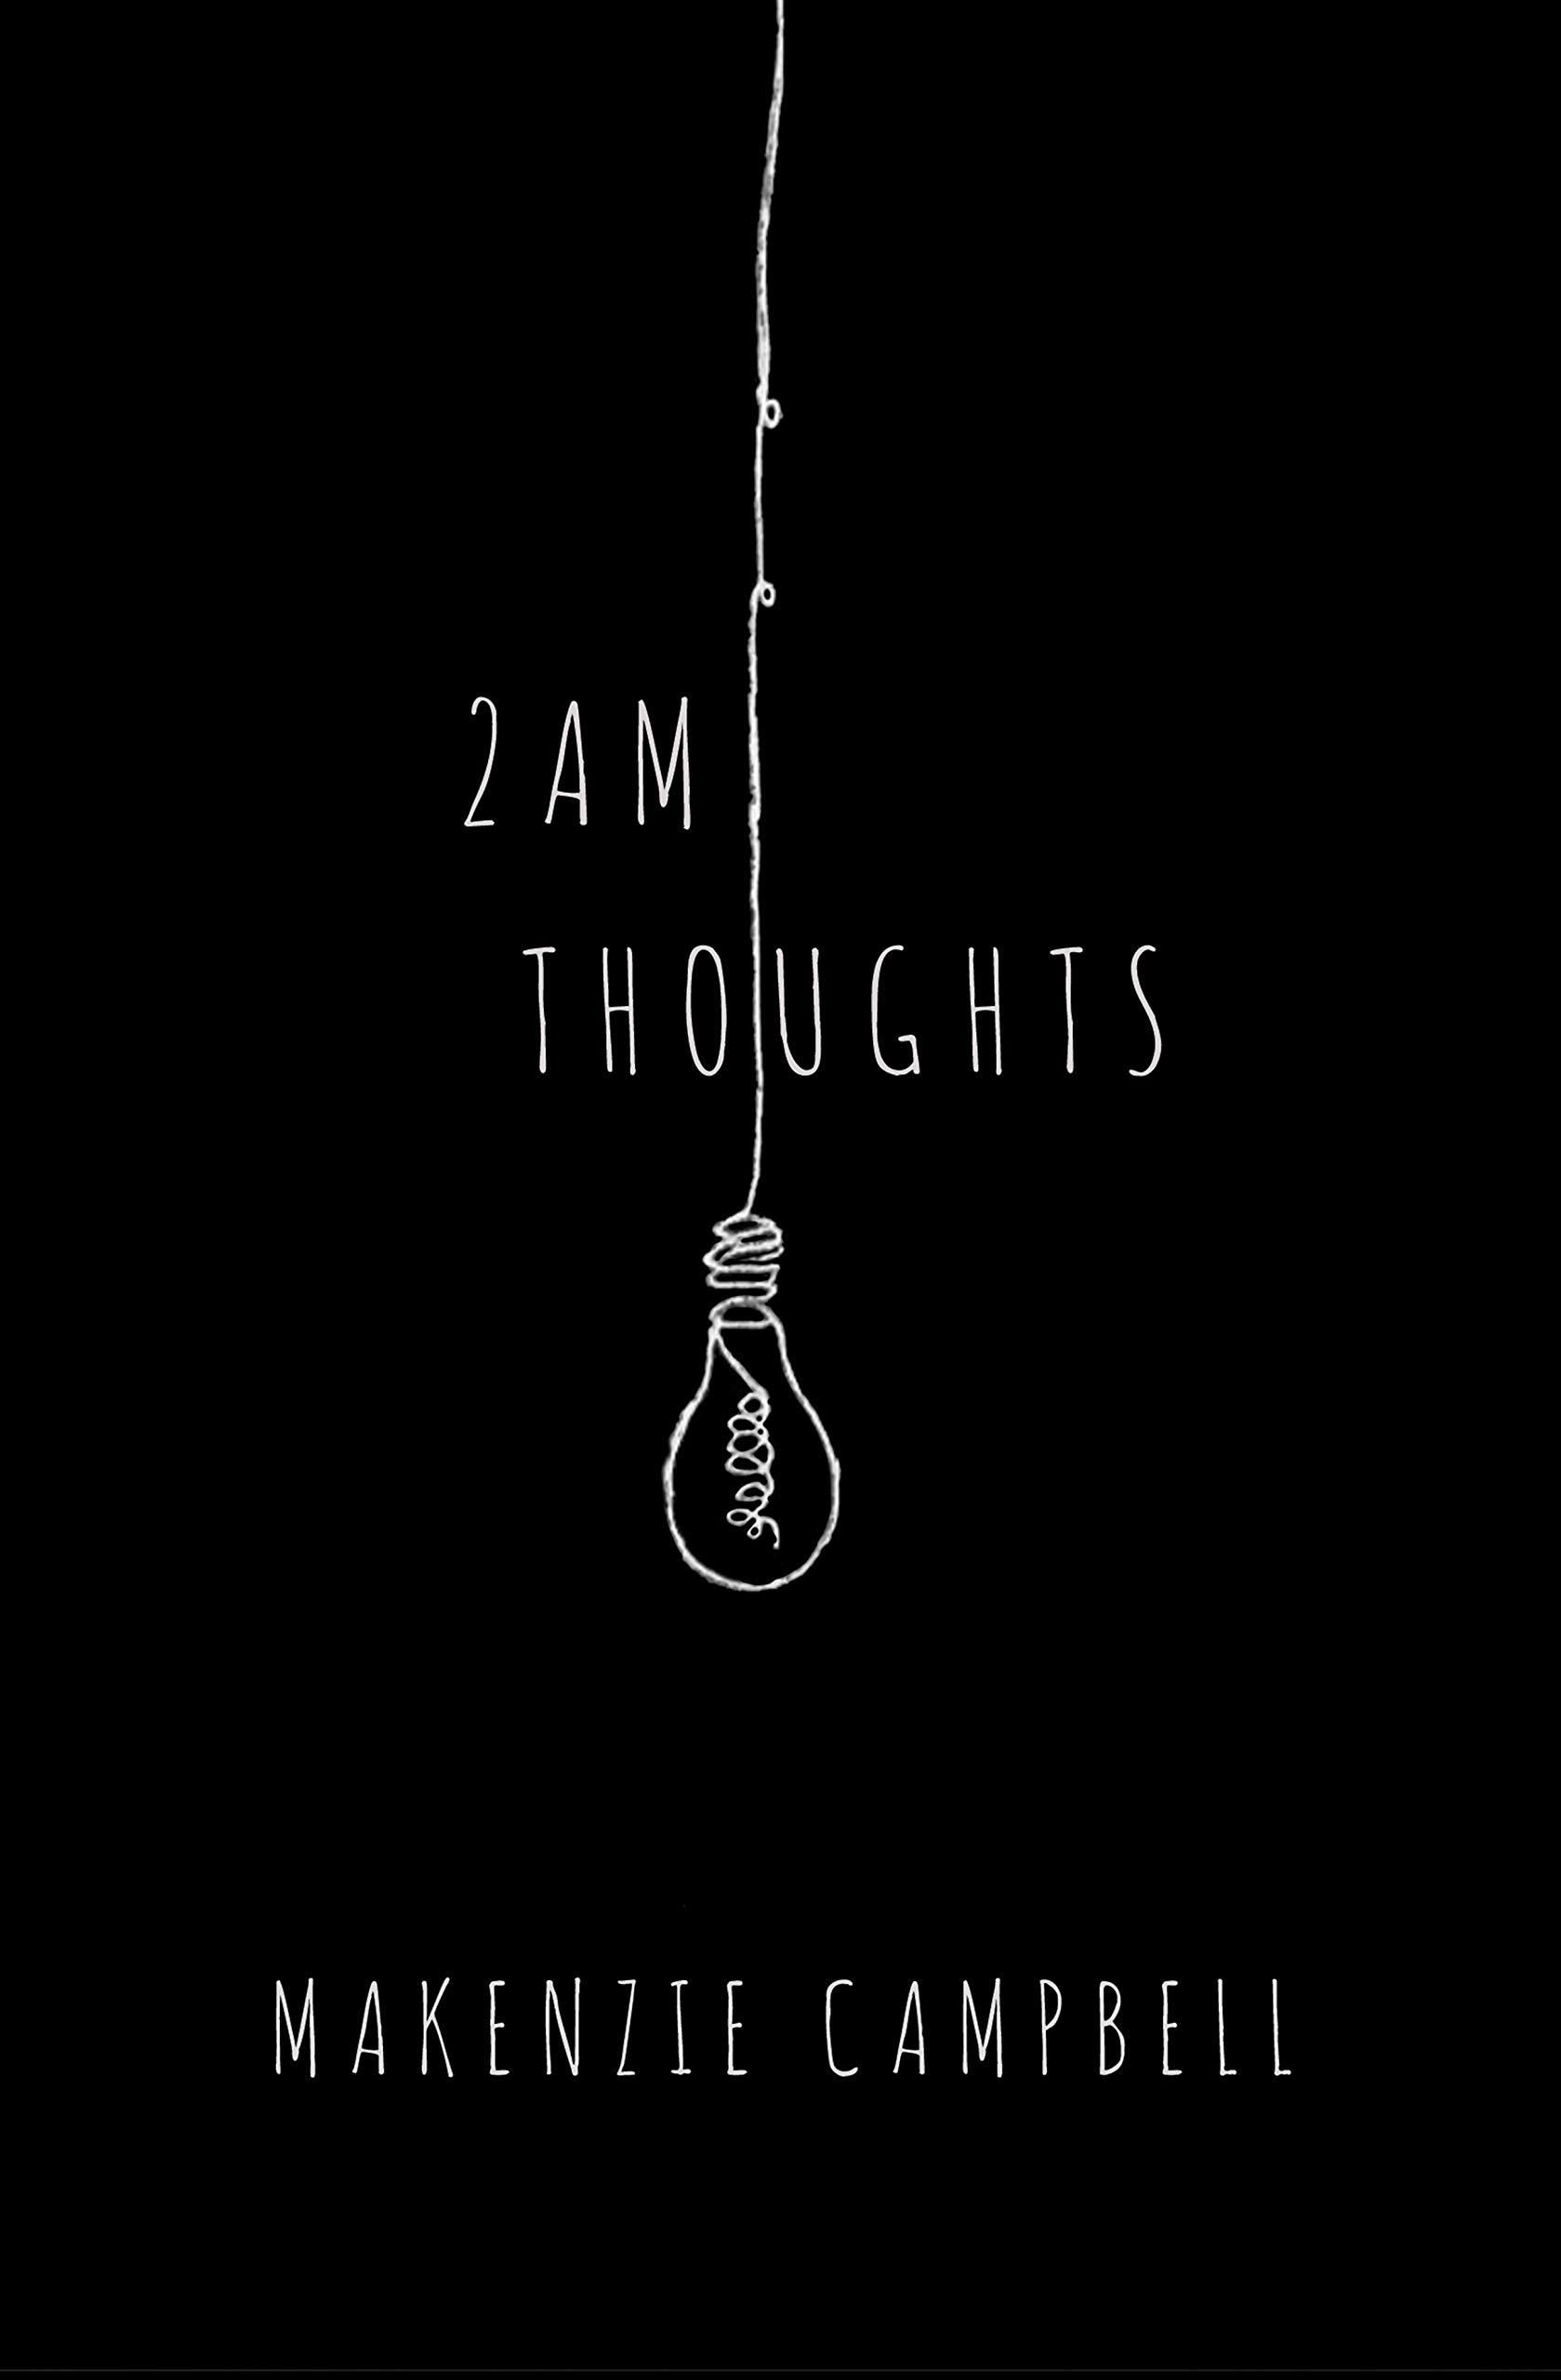 2am Thoughts Book Pdf